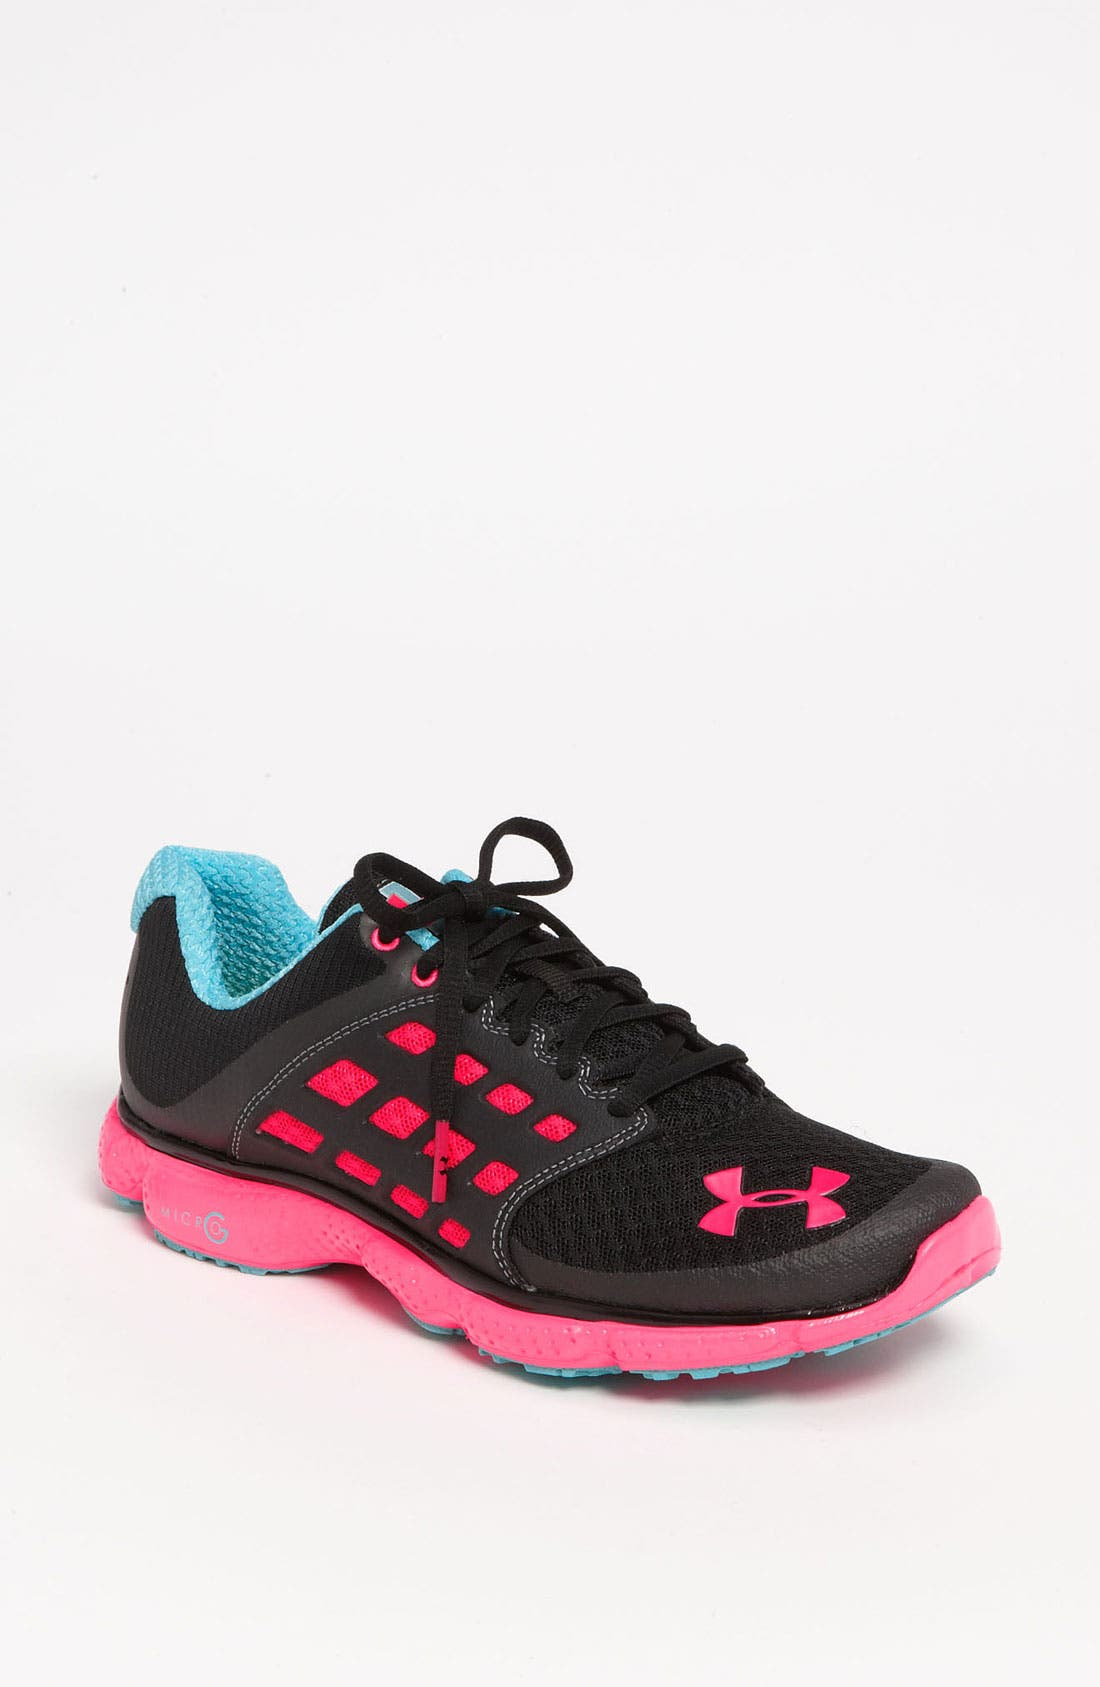 Main Image - Under Armour 'Connect' Running Shoe (Women)